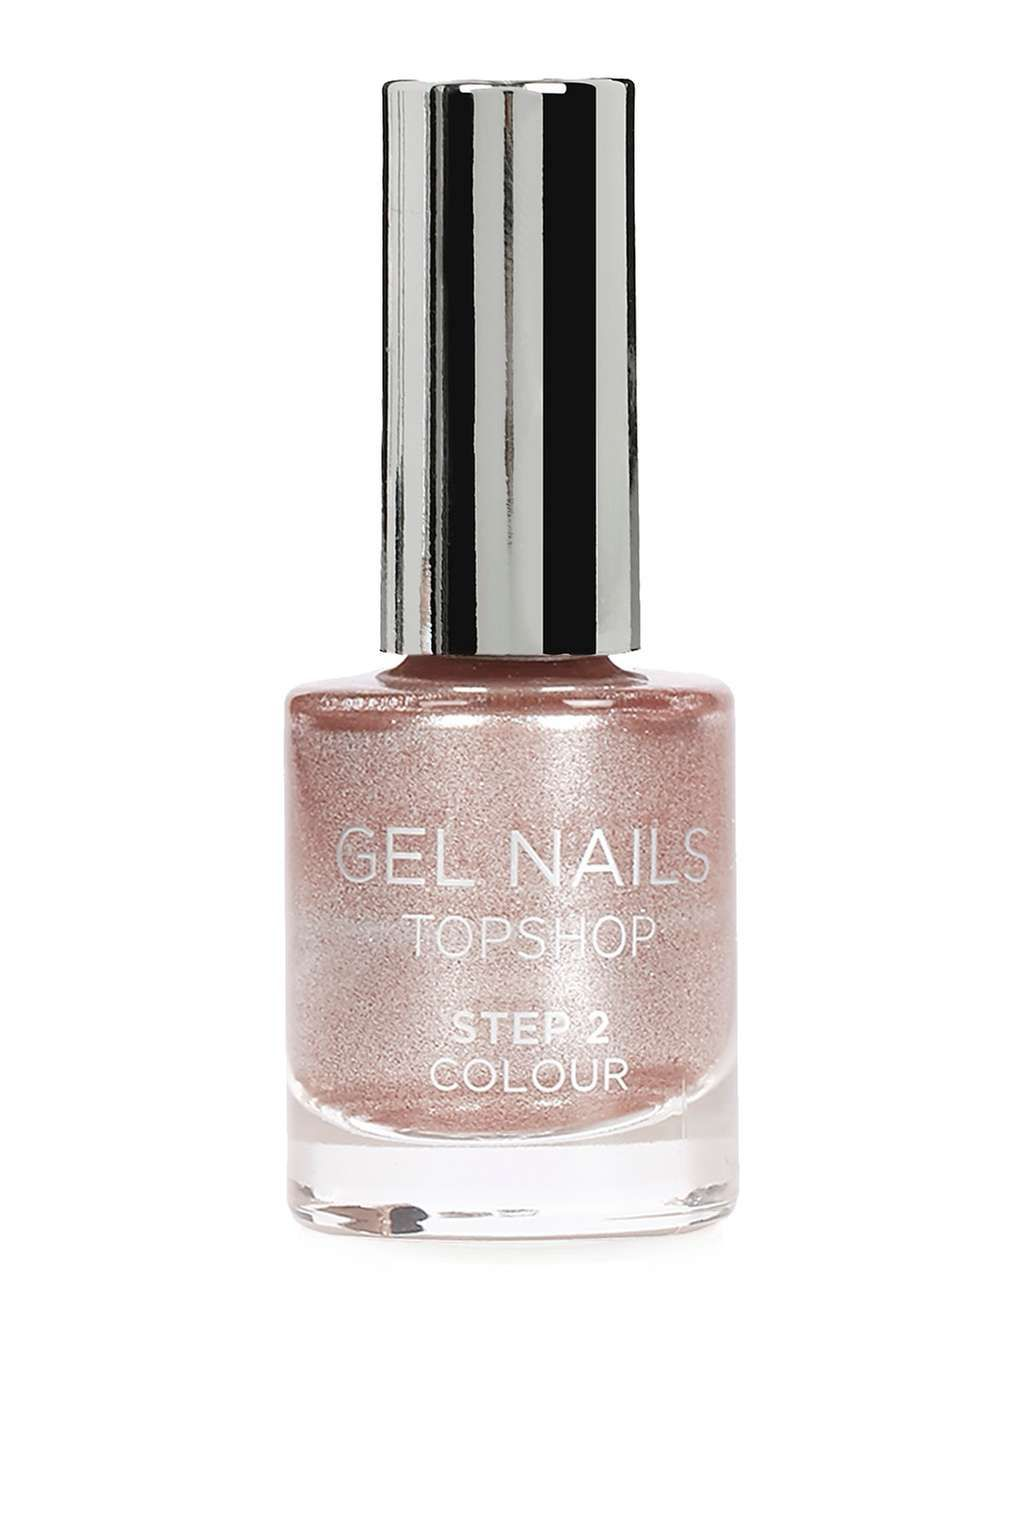 Gel Nail Colour in Pirate Gel nail colors